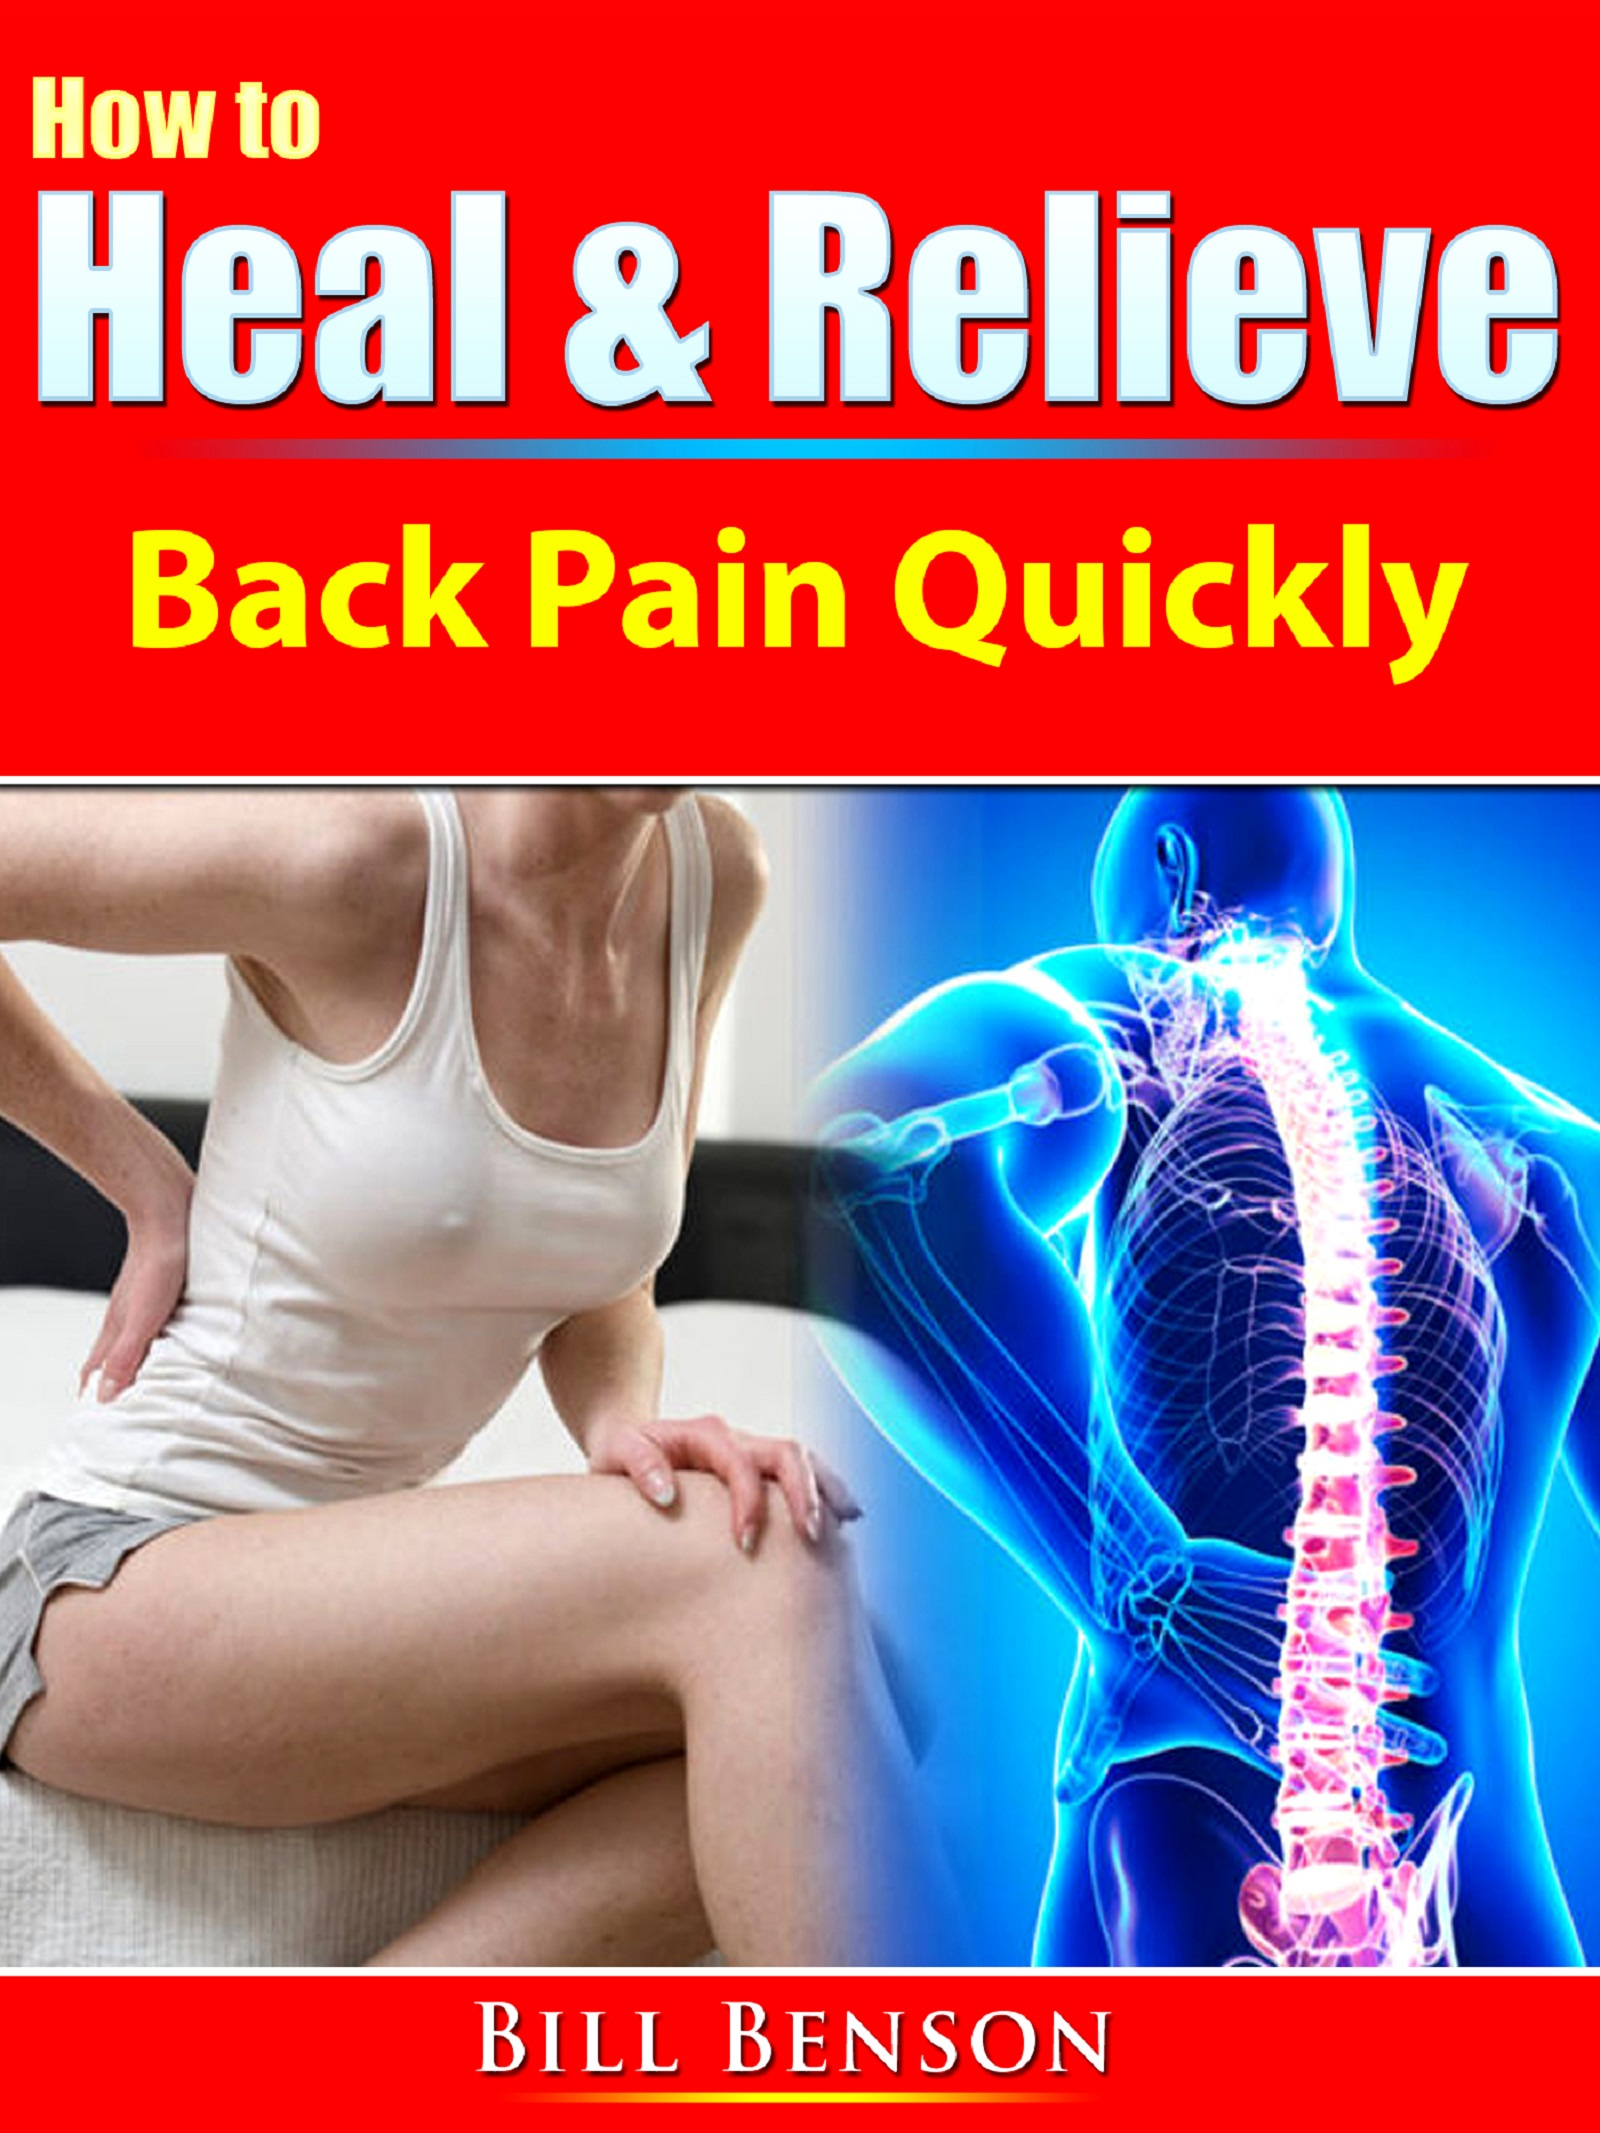 How to heal & relieve back pain quickly